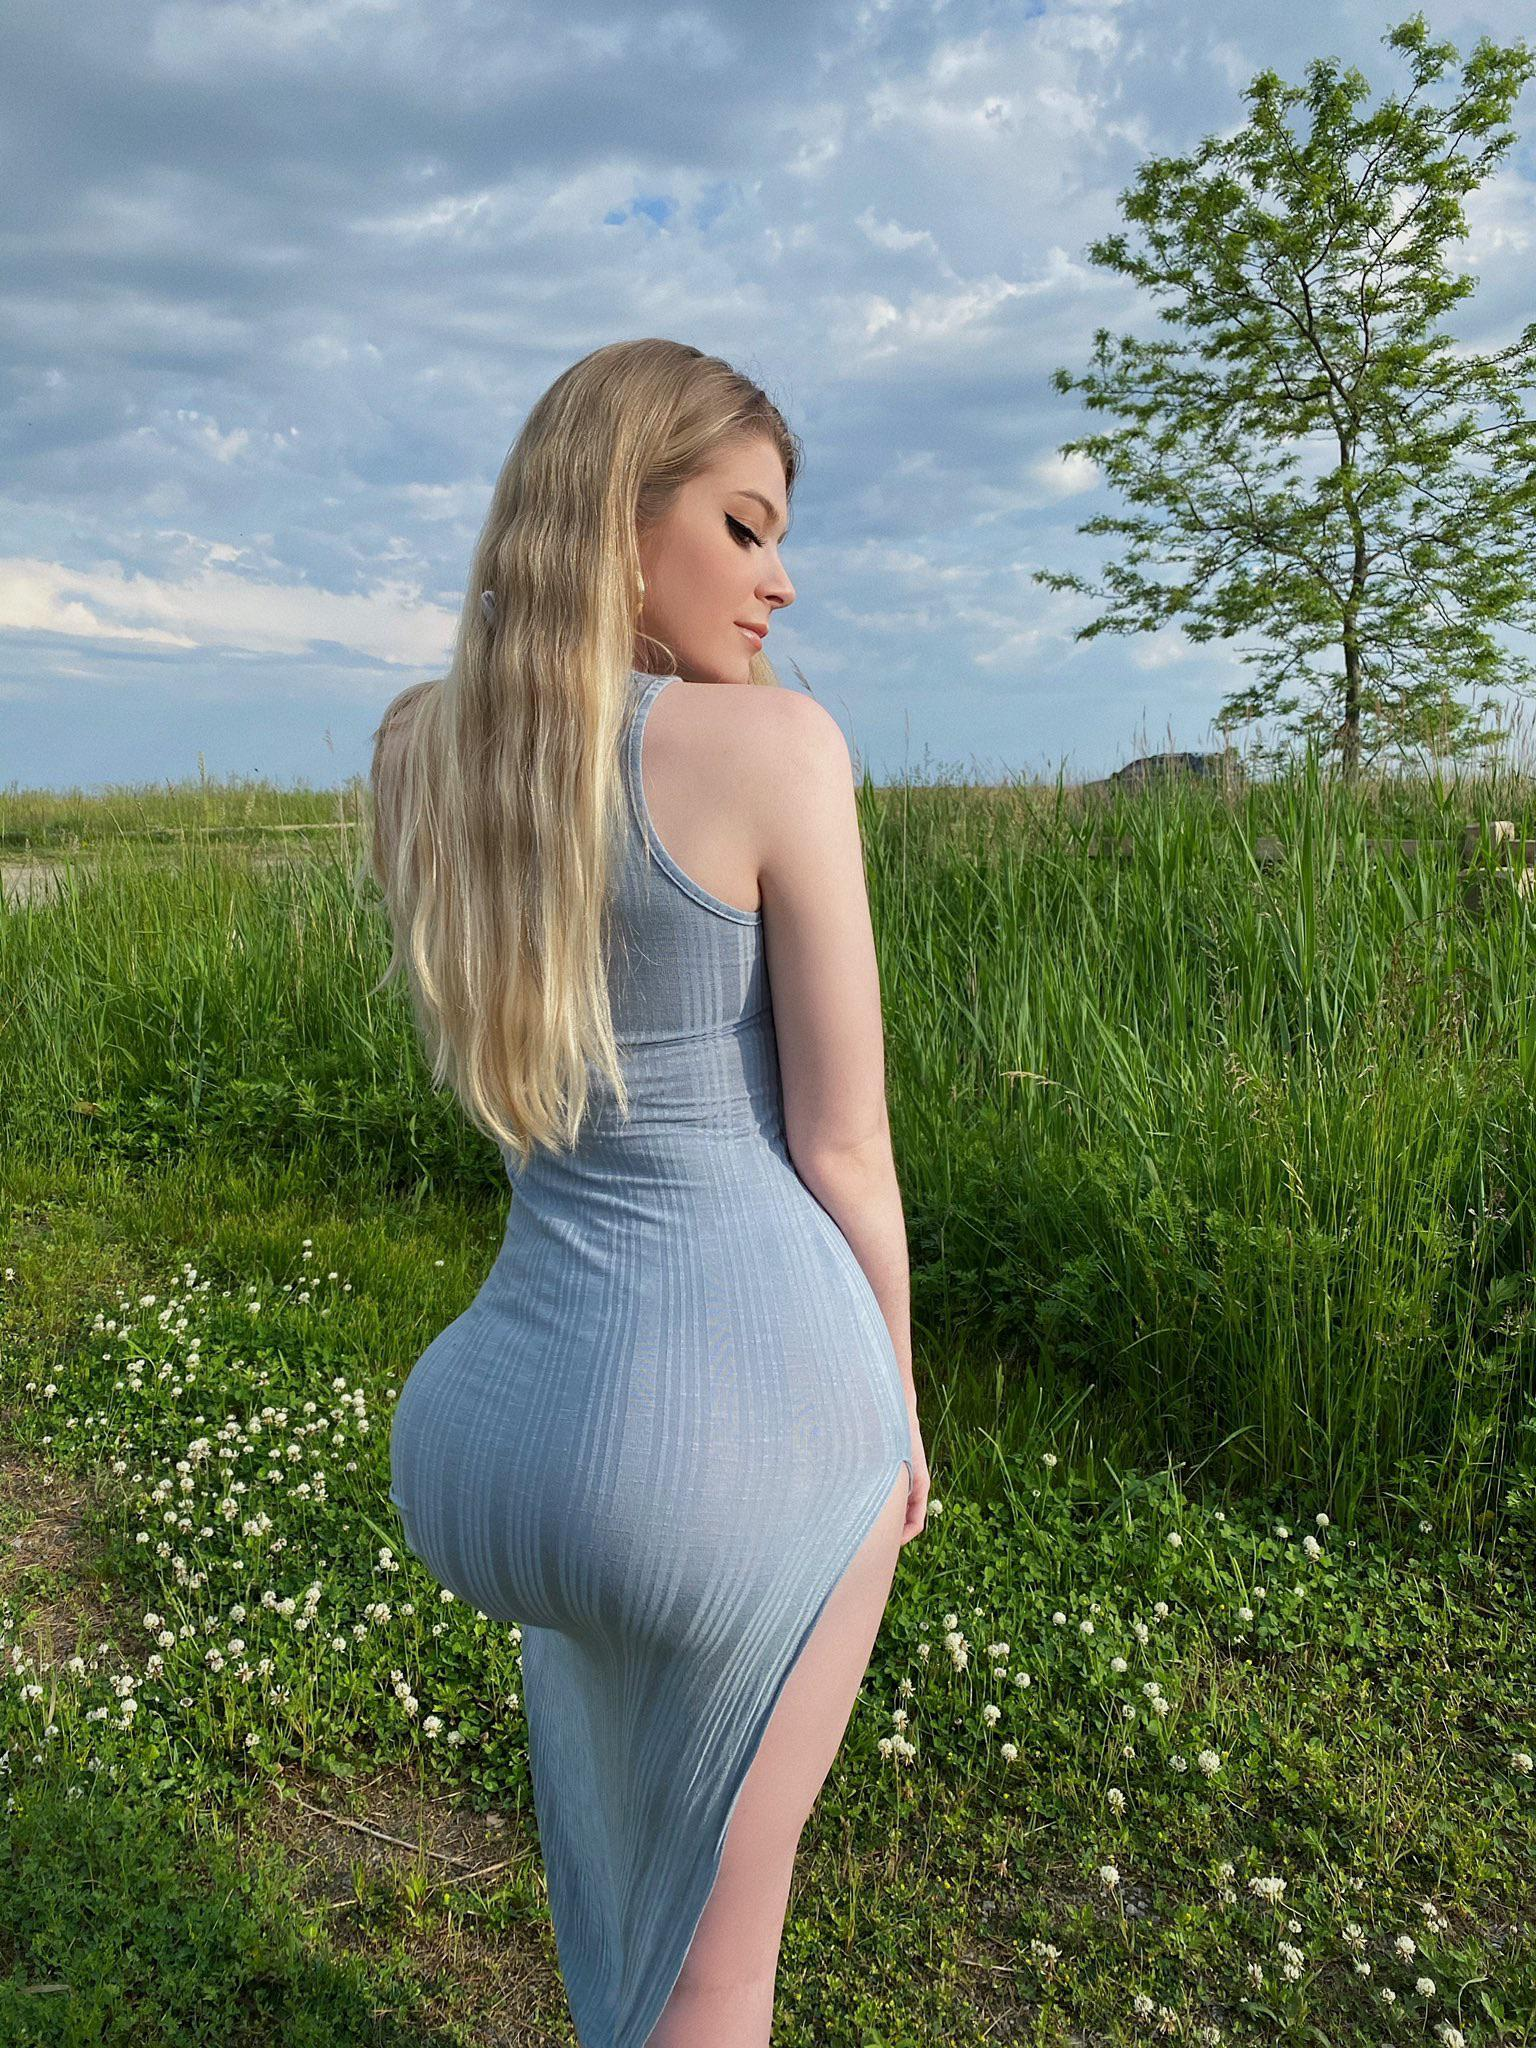 Lindsay Capuano Nude Onlyfans Snapchat Leaked Video Xx 13